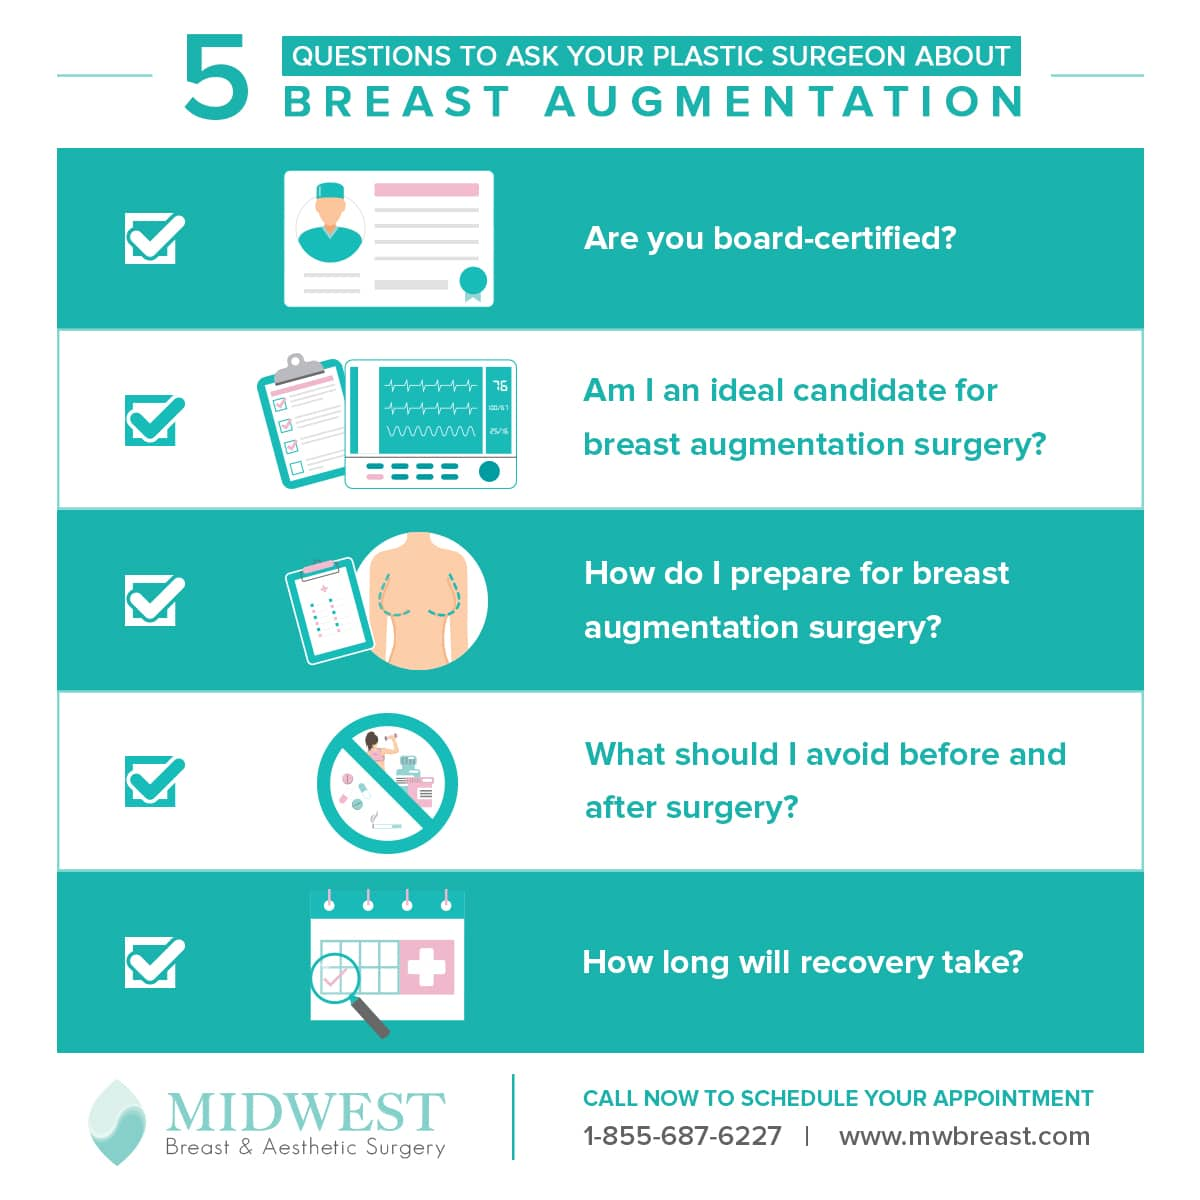 Questions to ask your plastic surgeon about Breast Augmentation